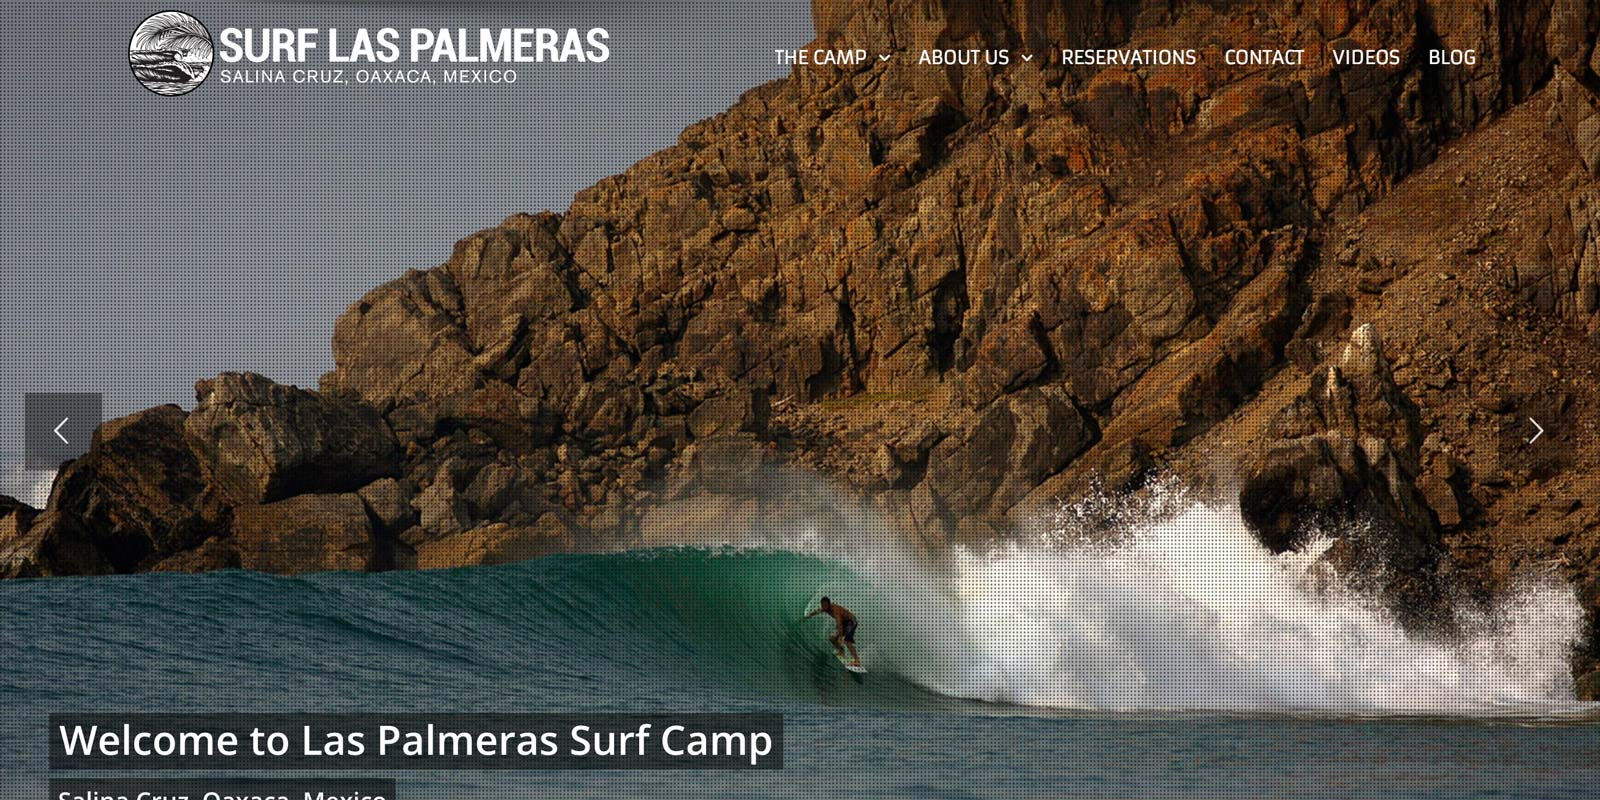 Las Palmeras Surf Camp Website